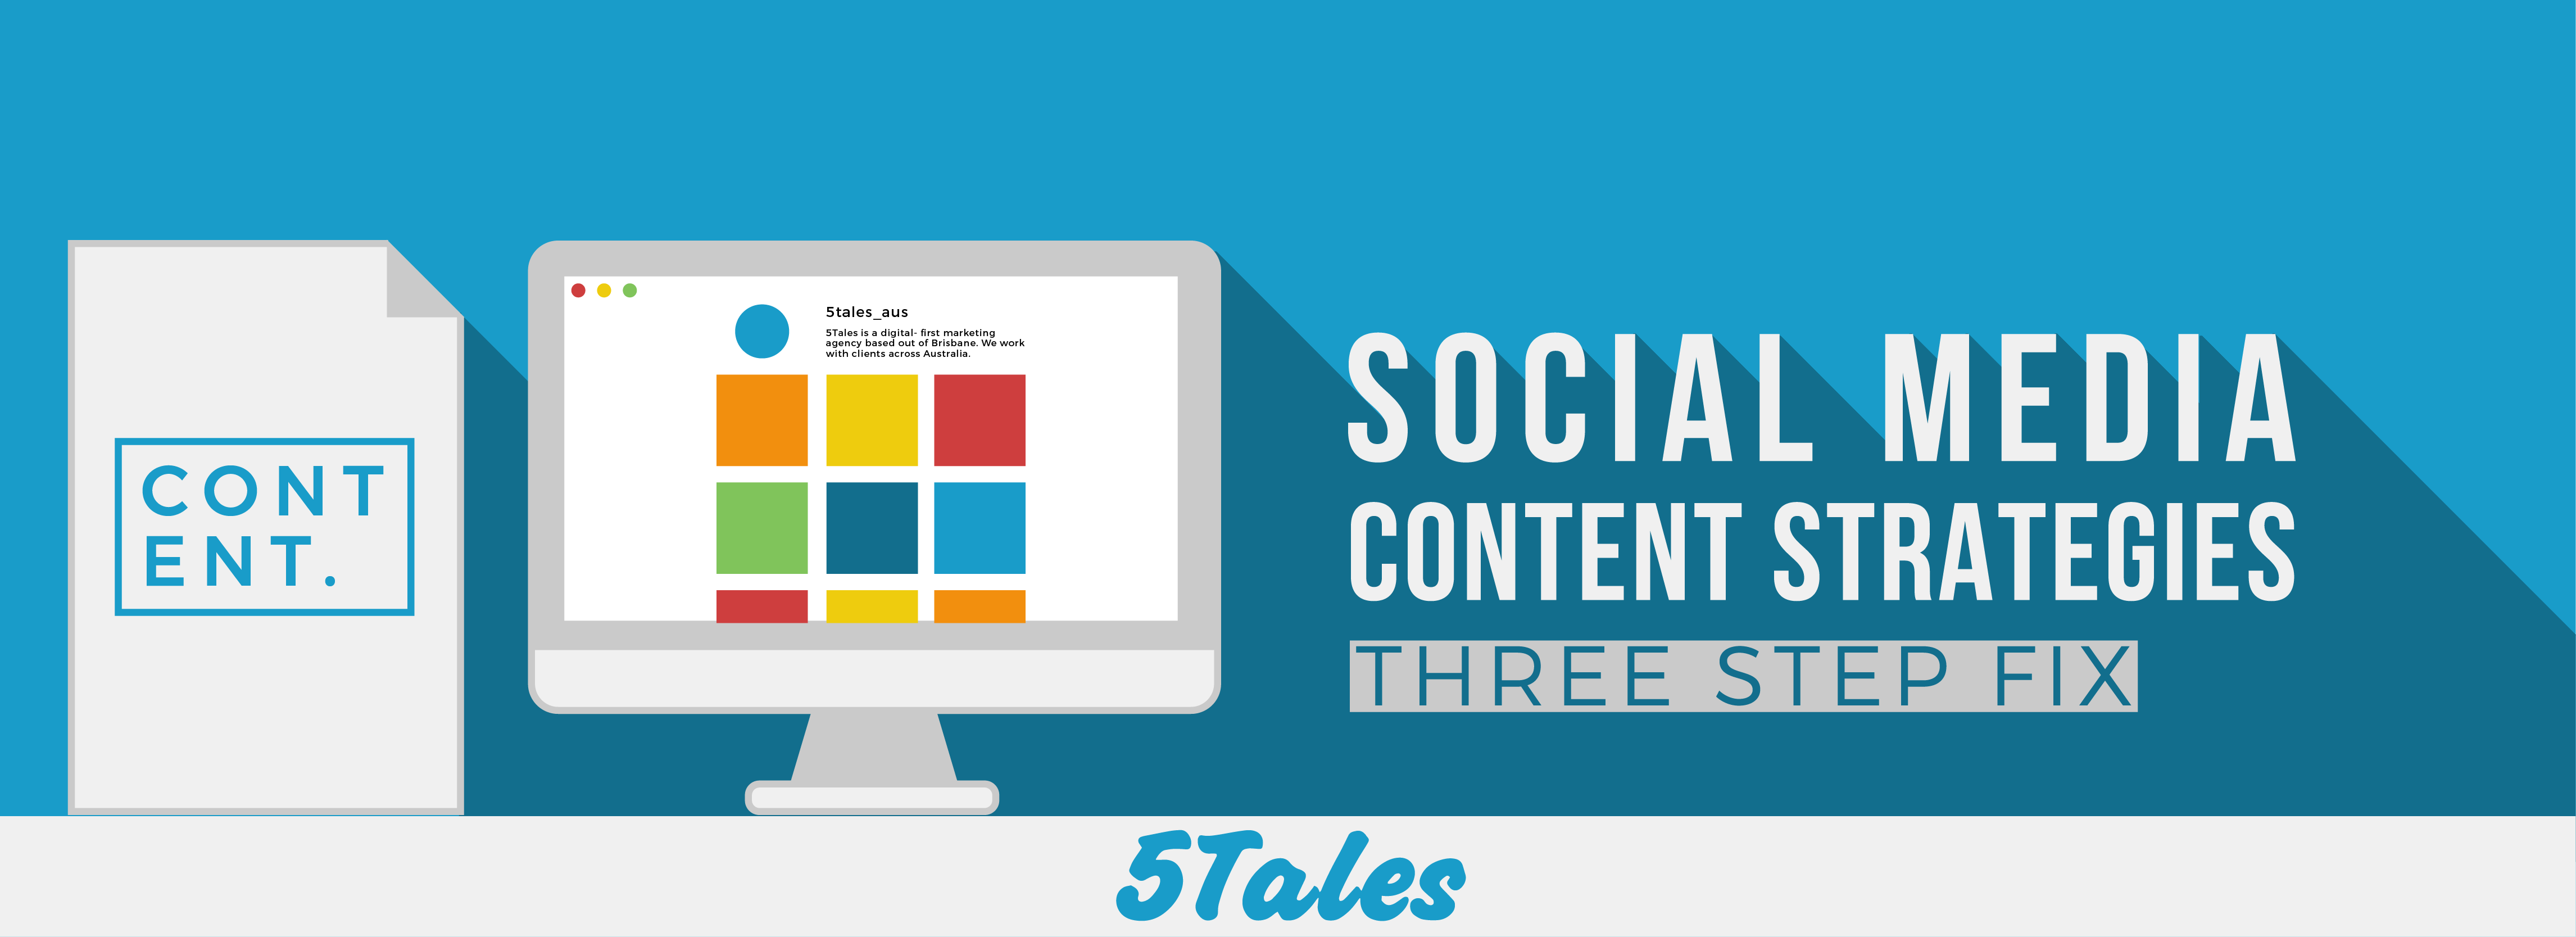 Social Media Content Strategies: 3 Step Fix